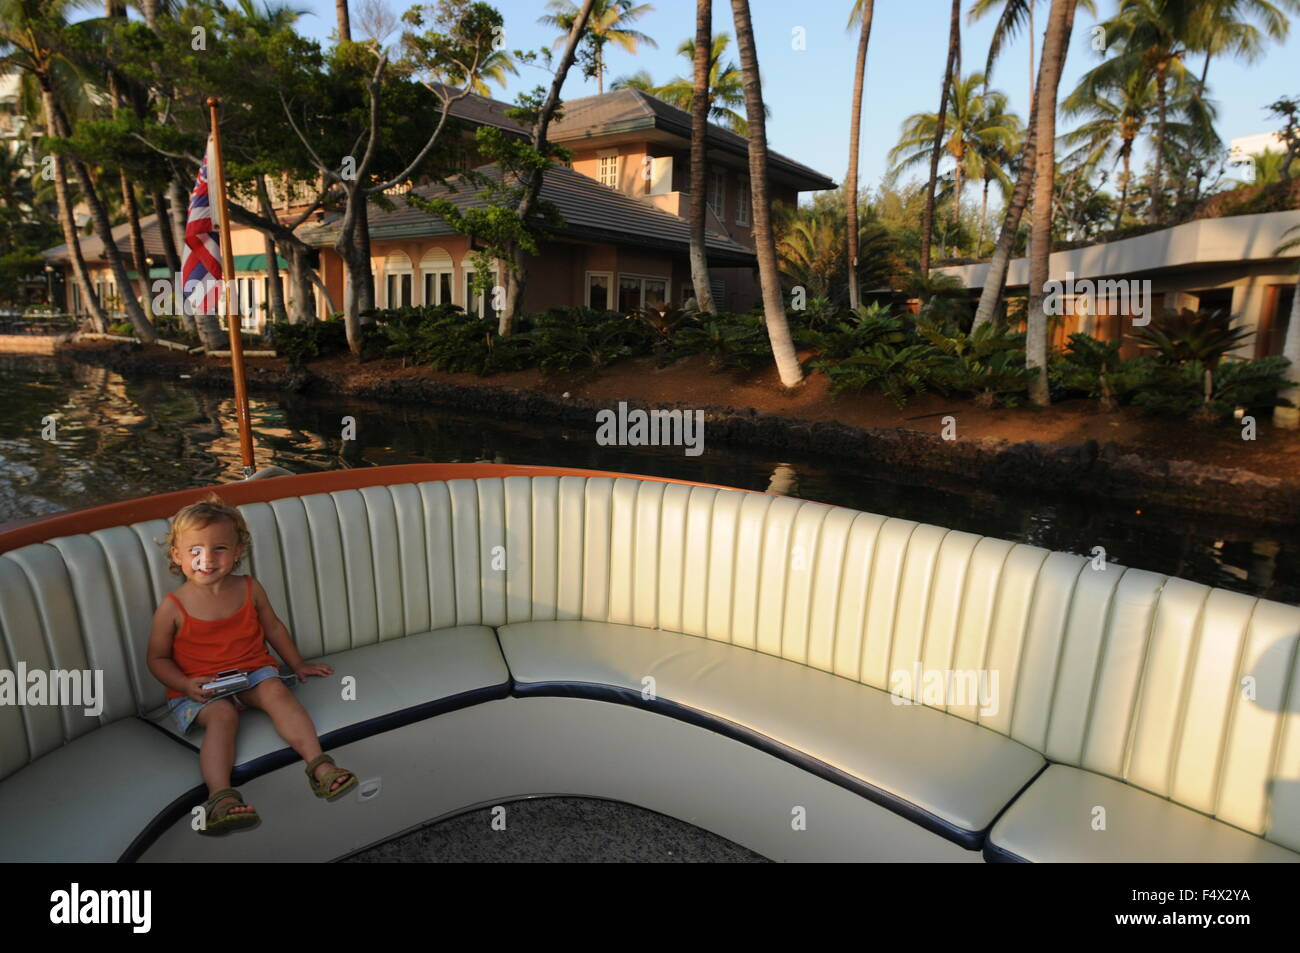 Girl inside a boat in the lagoon at Hilton Waikoloa Village